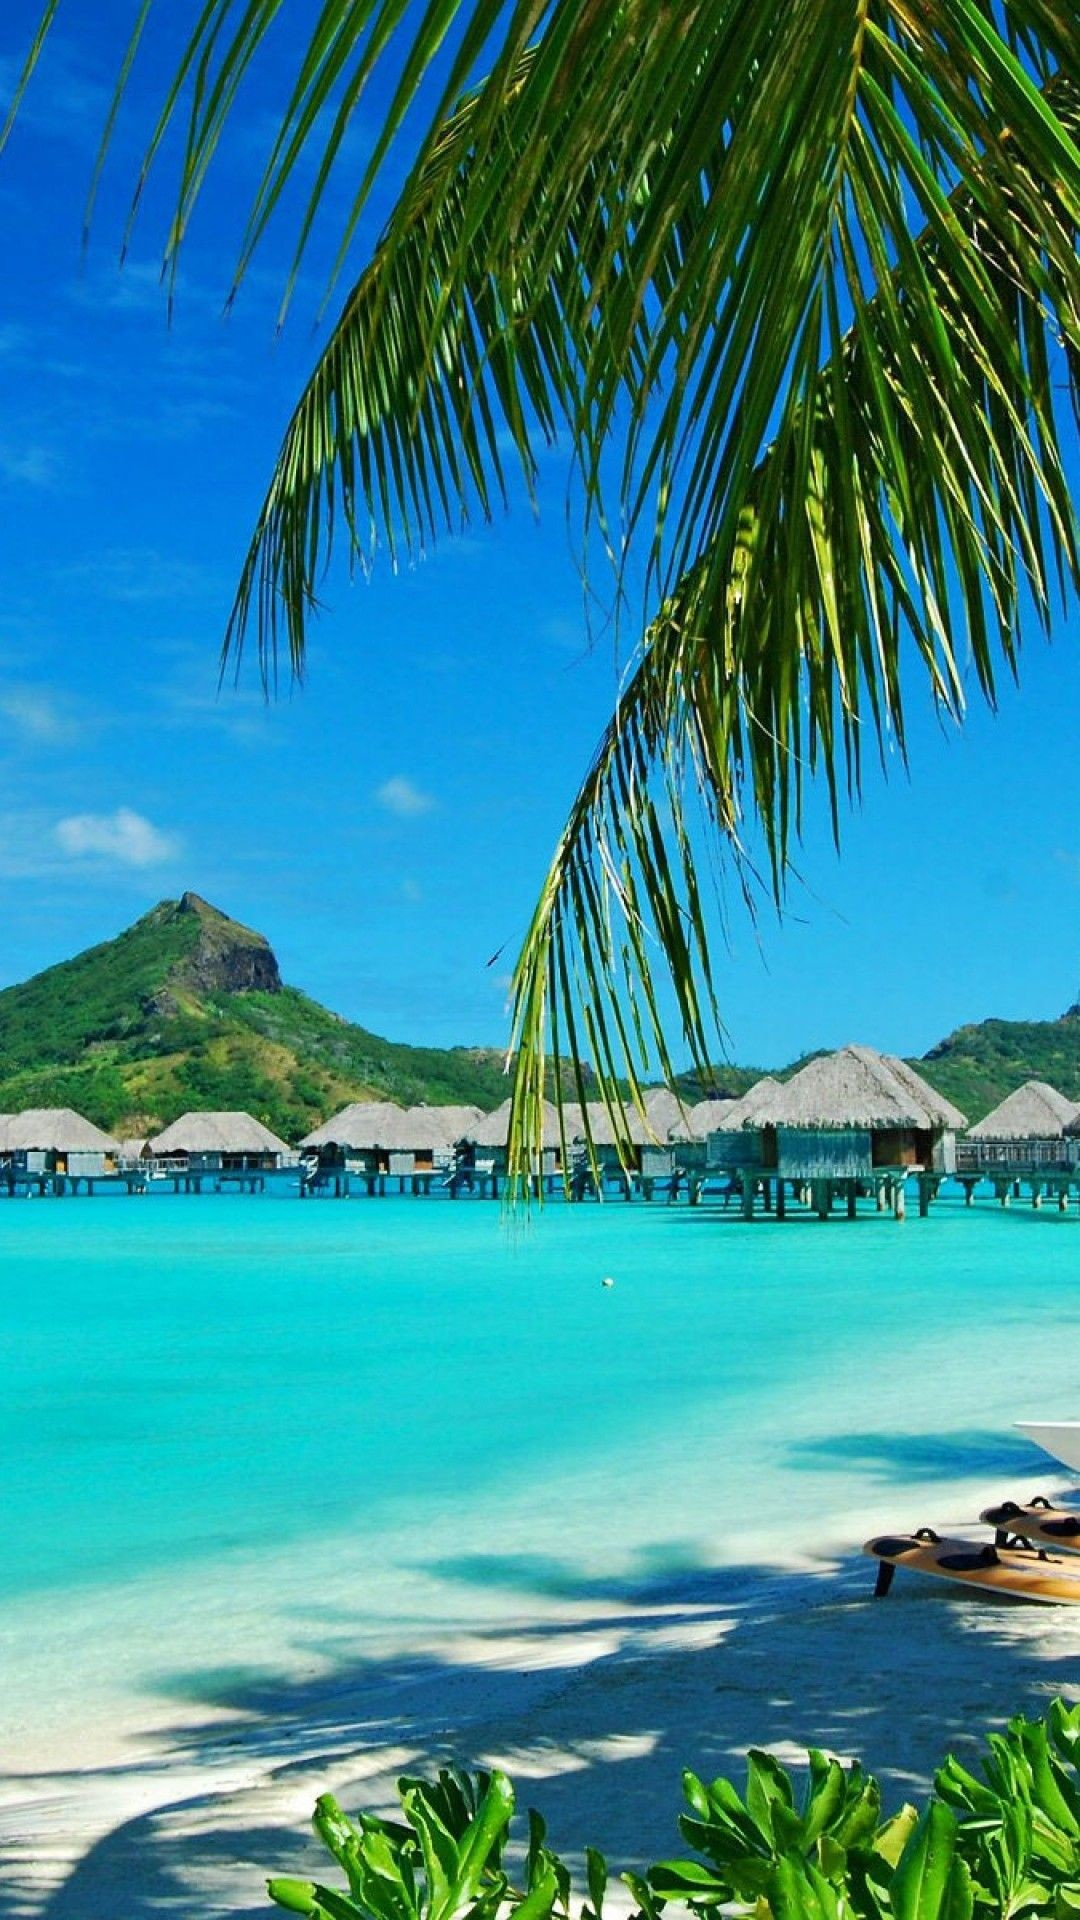 Res: 1080x1920, abstract iphone 6 plus wallpapers - bora bora resort bungalows iphone 6  plus hd wallpaper-